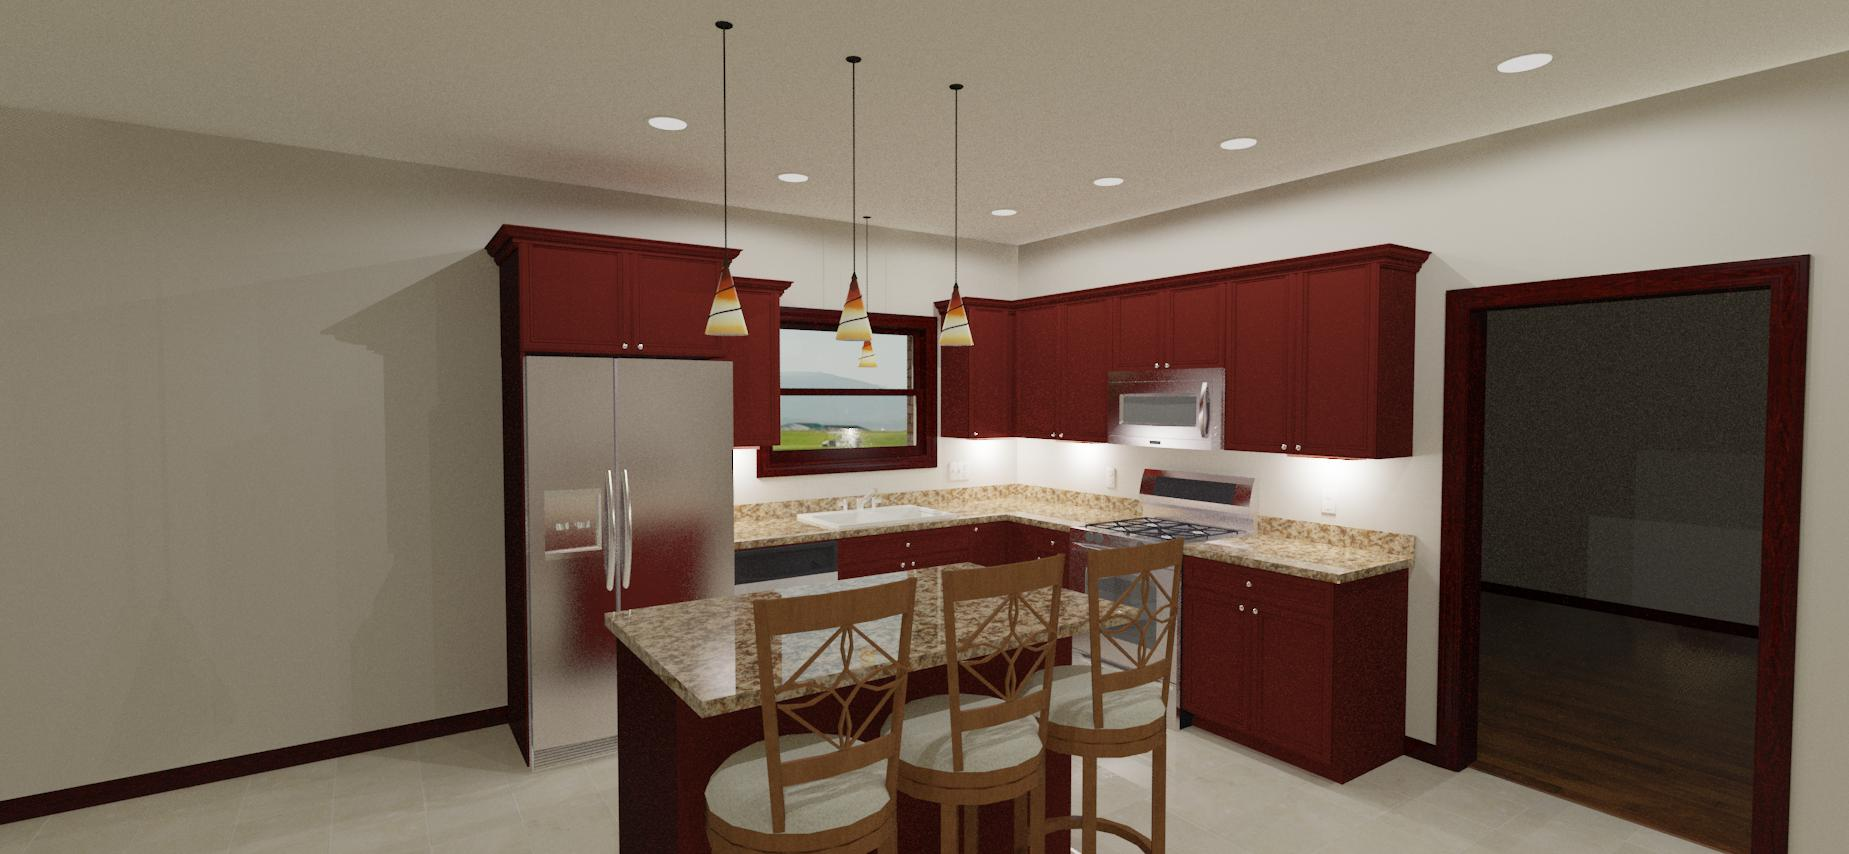 New Kitchen Recessed Lighting Layout Page 2 Electrician